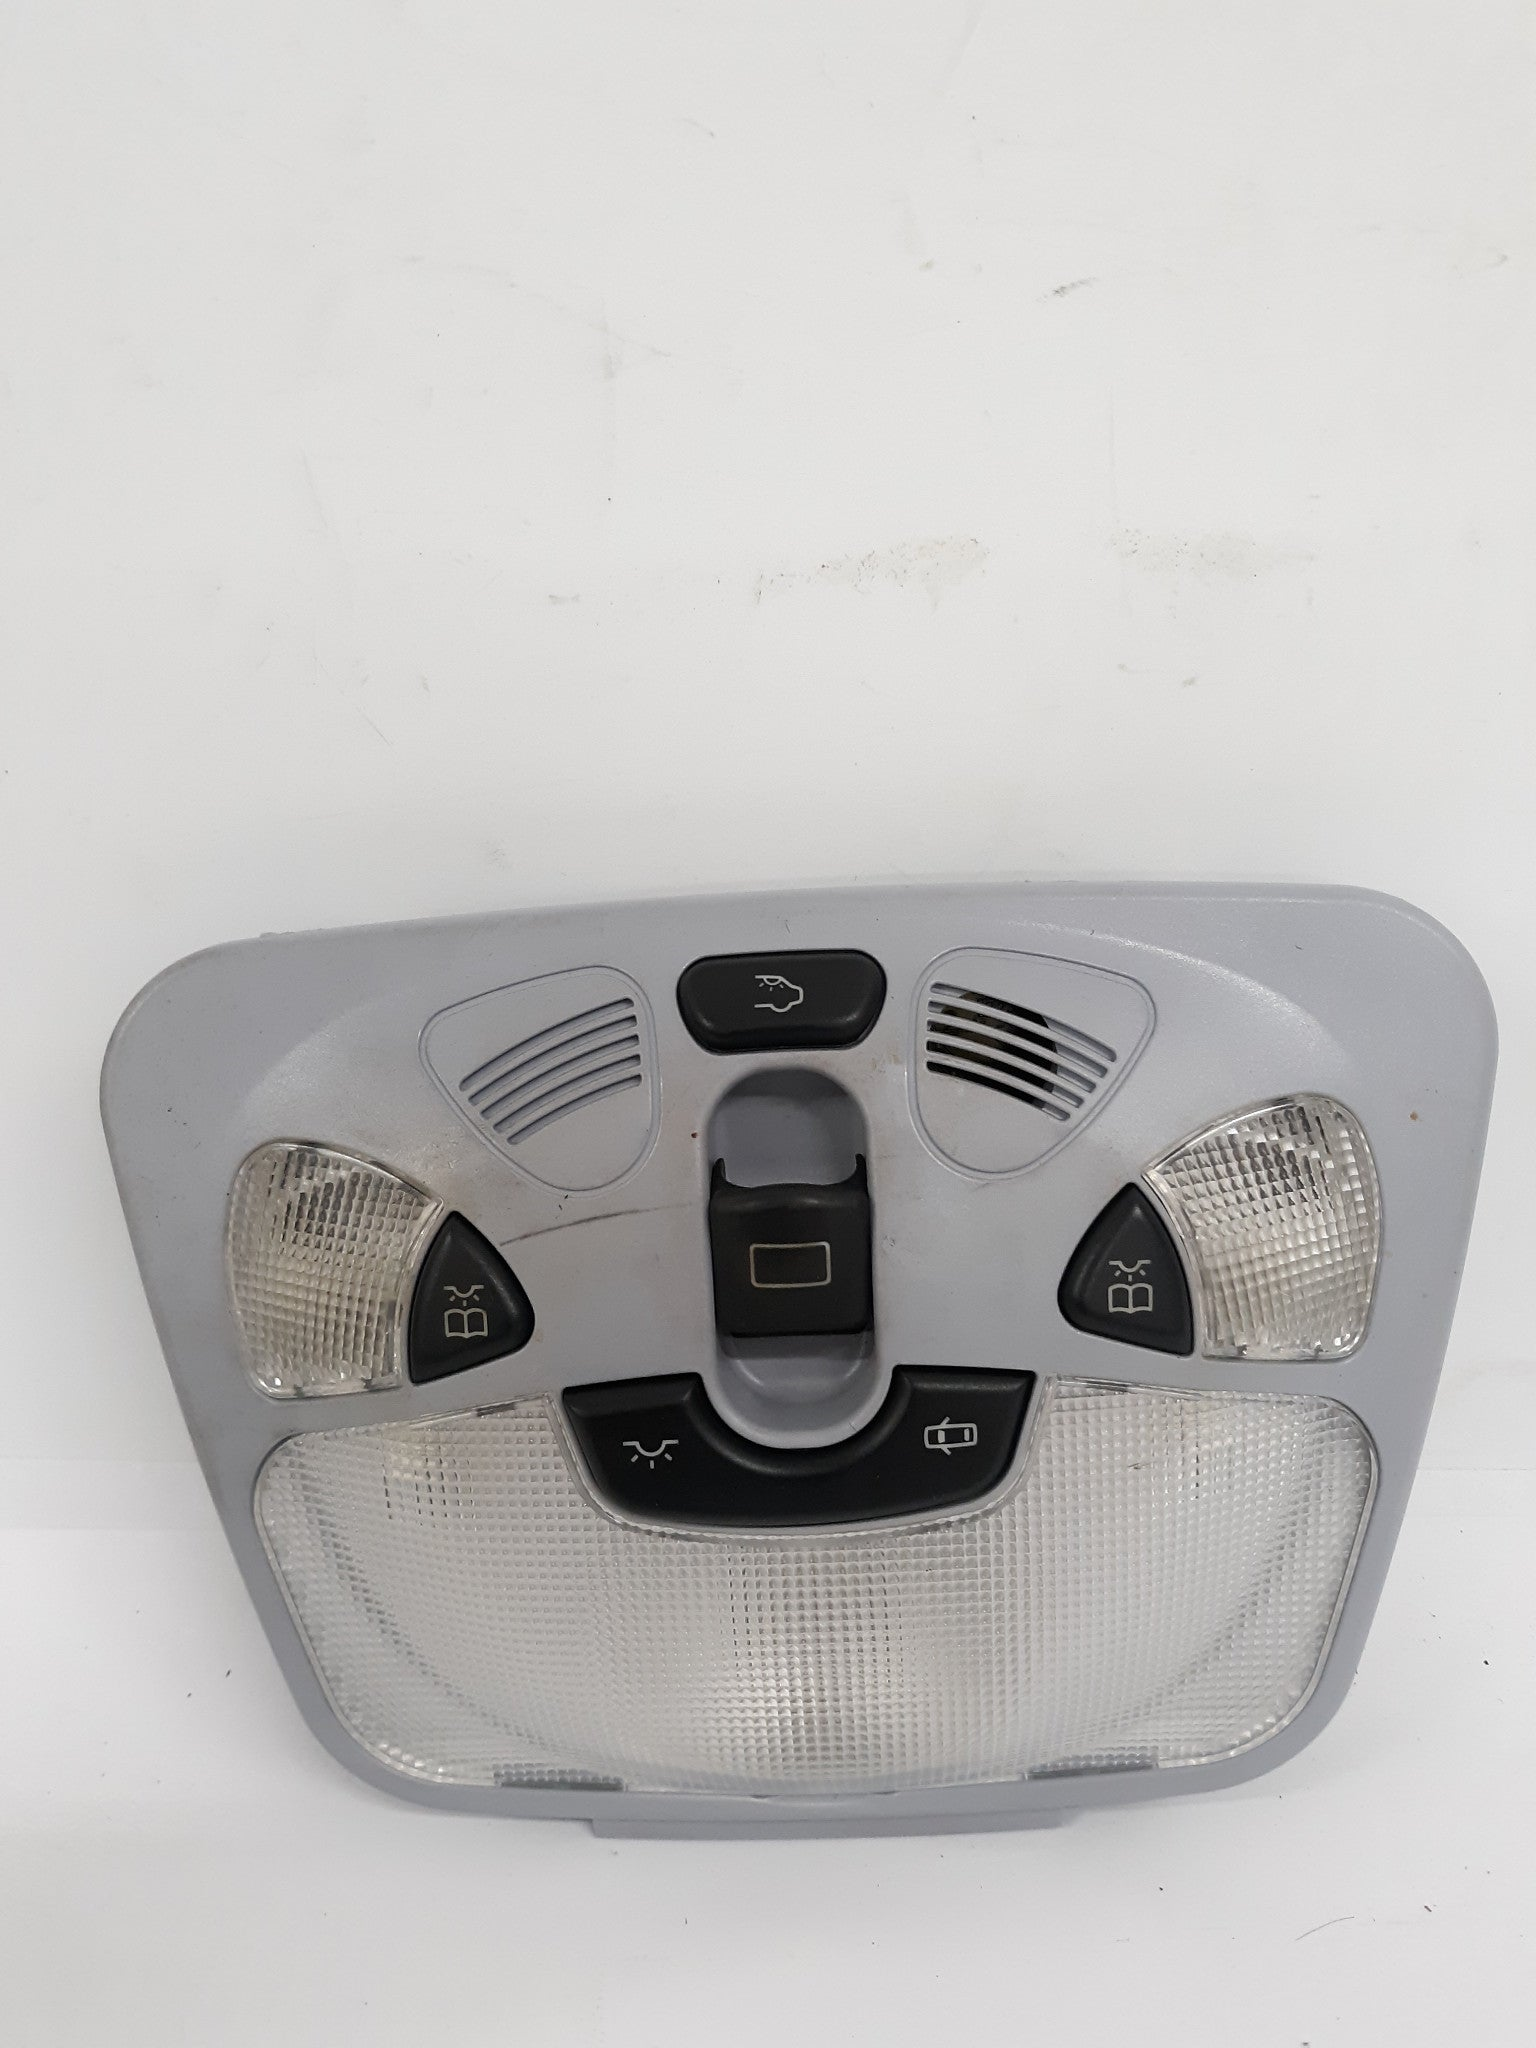 2001 - 2007 MERCEDES W203 C240 C320 C230 C280 DOME LIGHT OVERHEAD MAP LAMP OEM - Click Receive Auto Parts